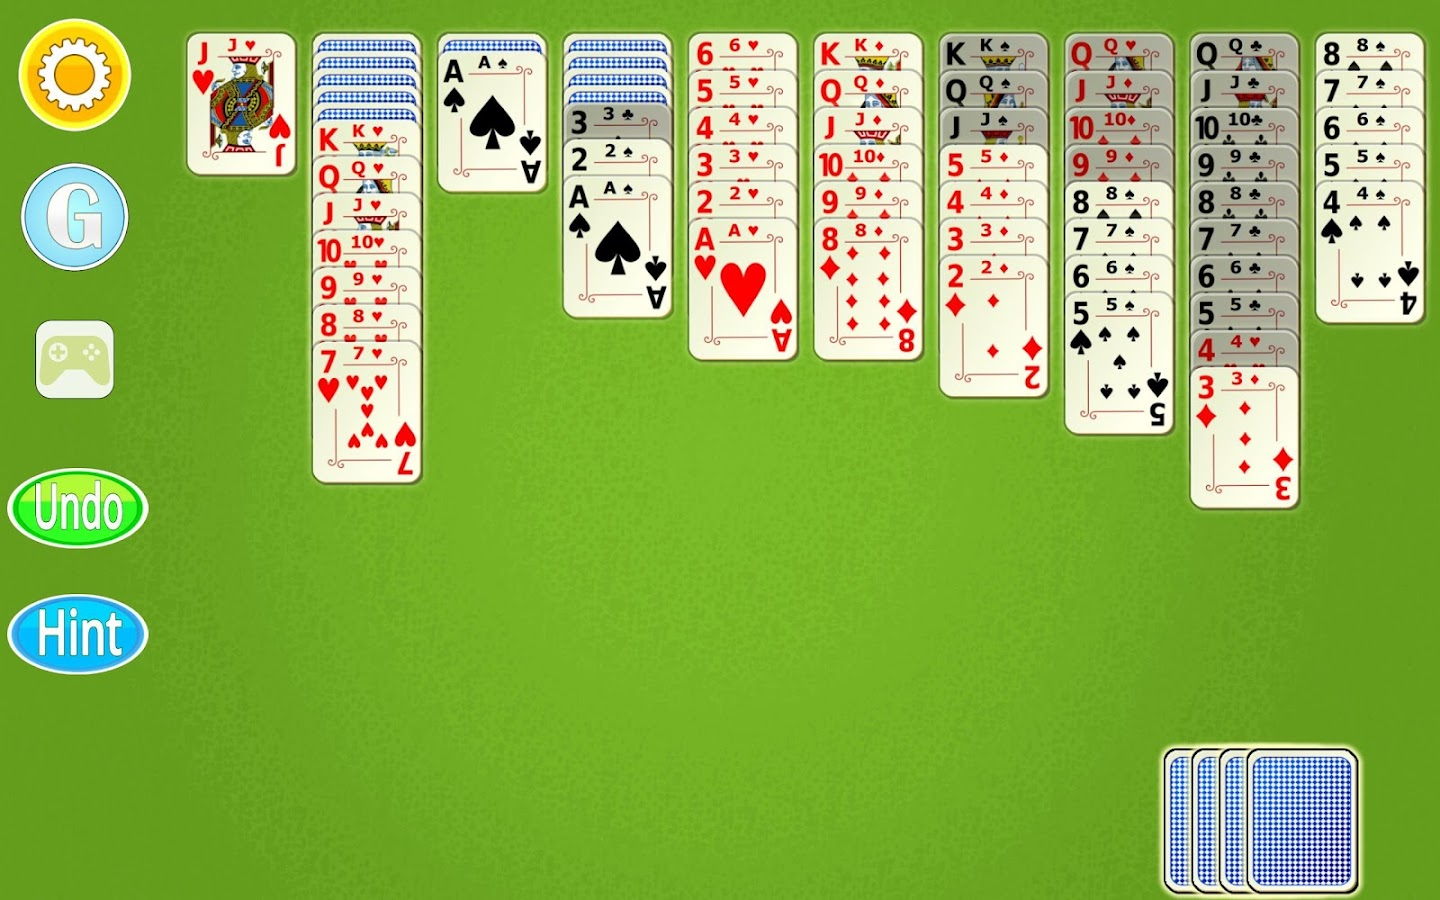 how to win solitaire app